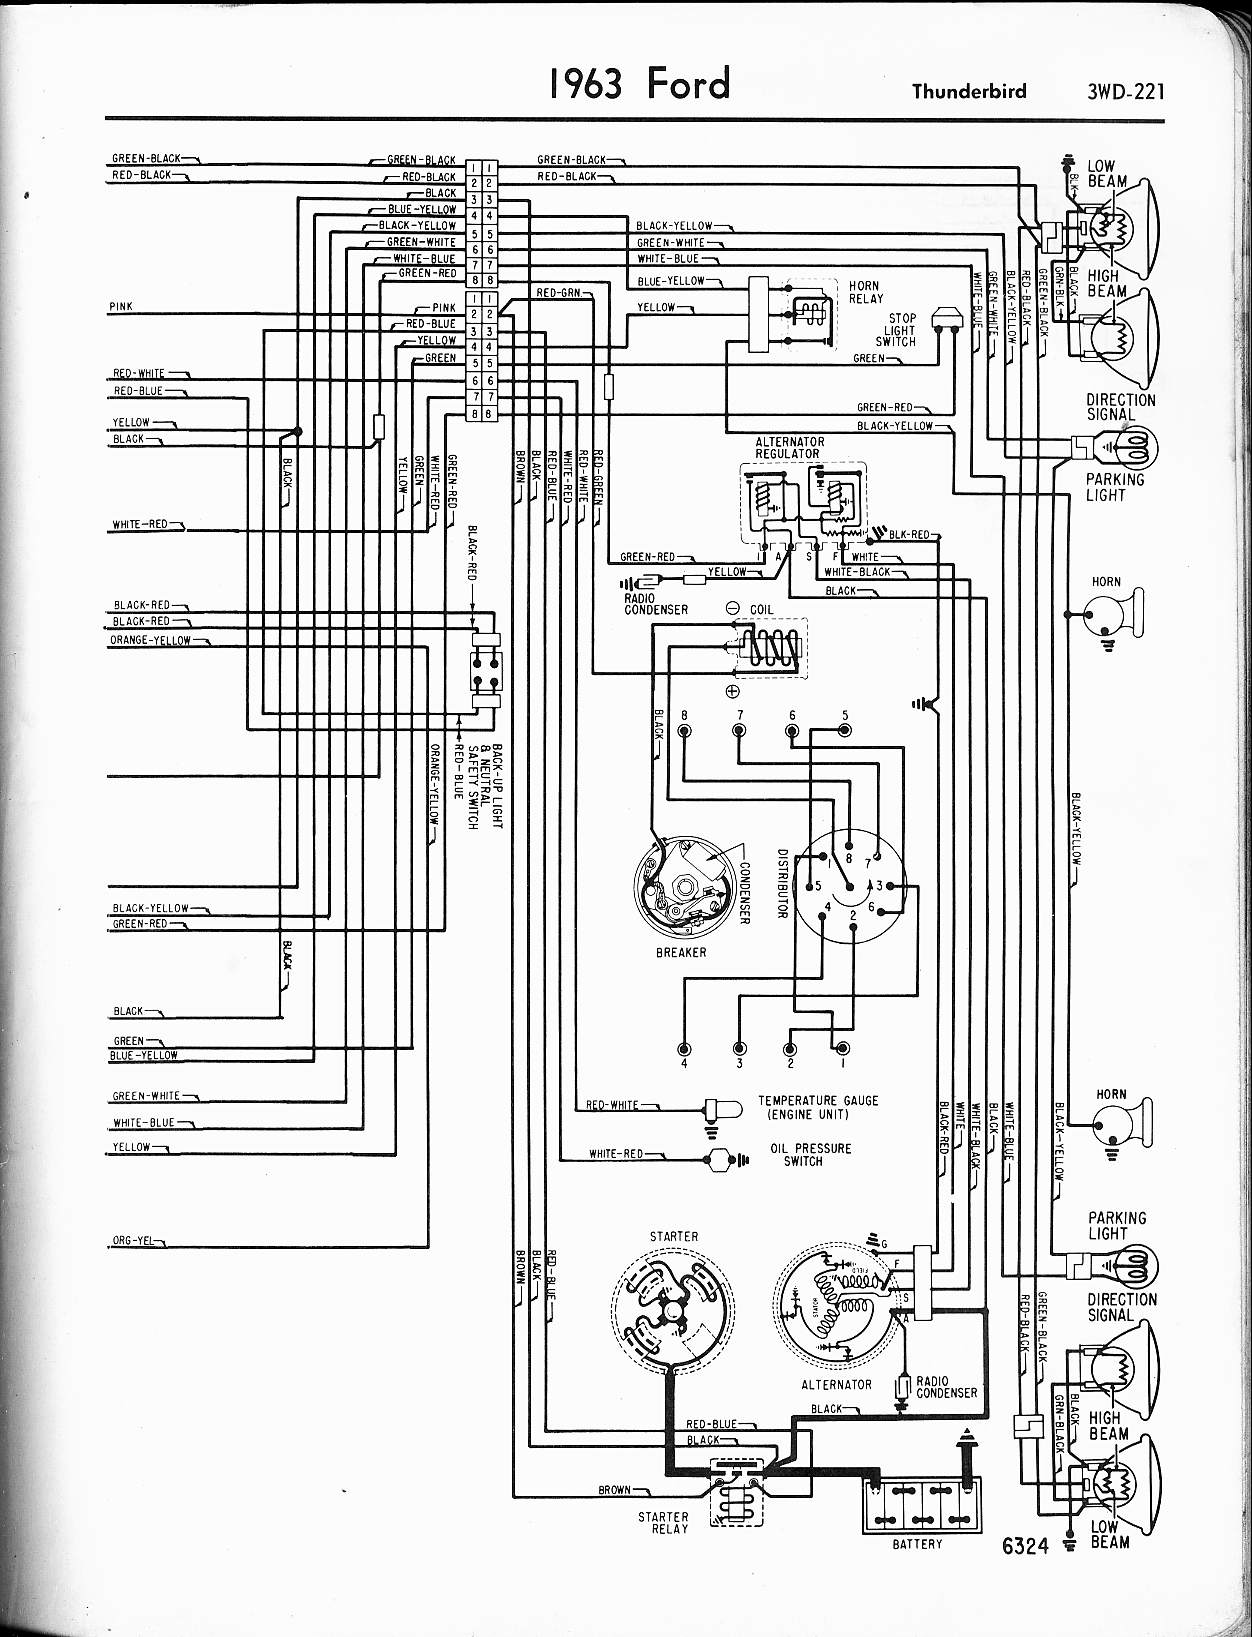 57 65 Ford Wiring Diagrams 1963 Chevy 2 Diagram Thunderbird Right